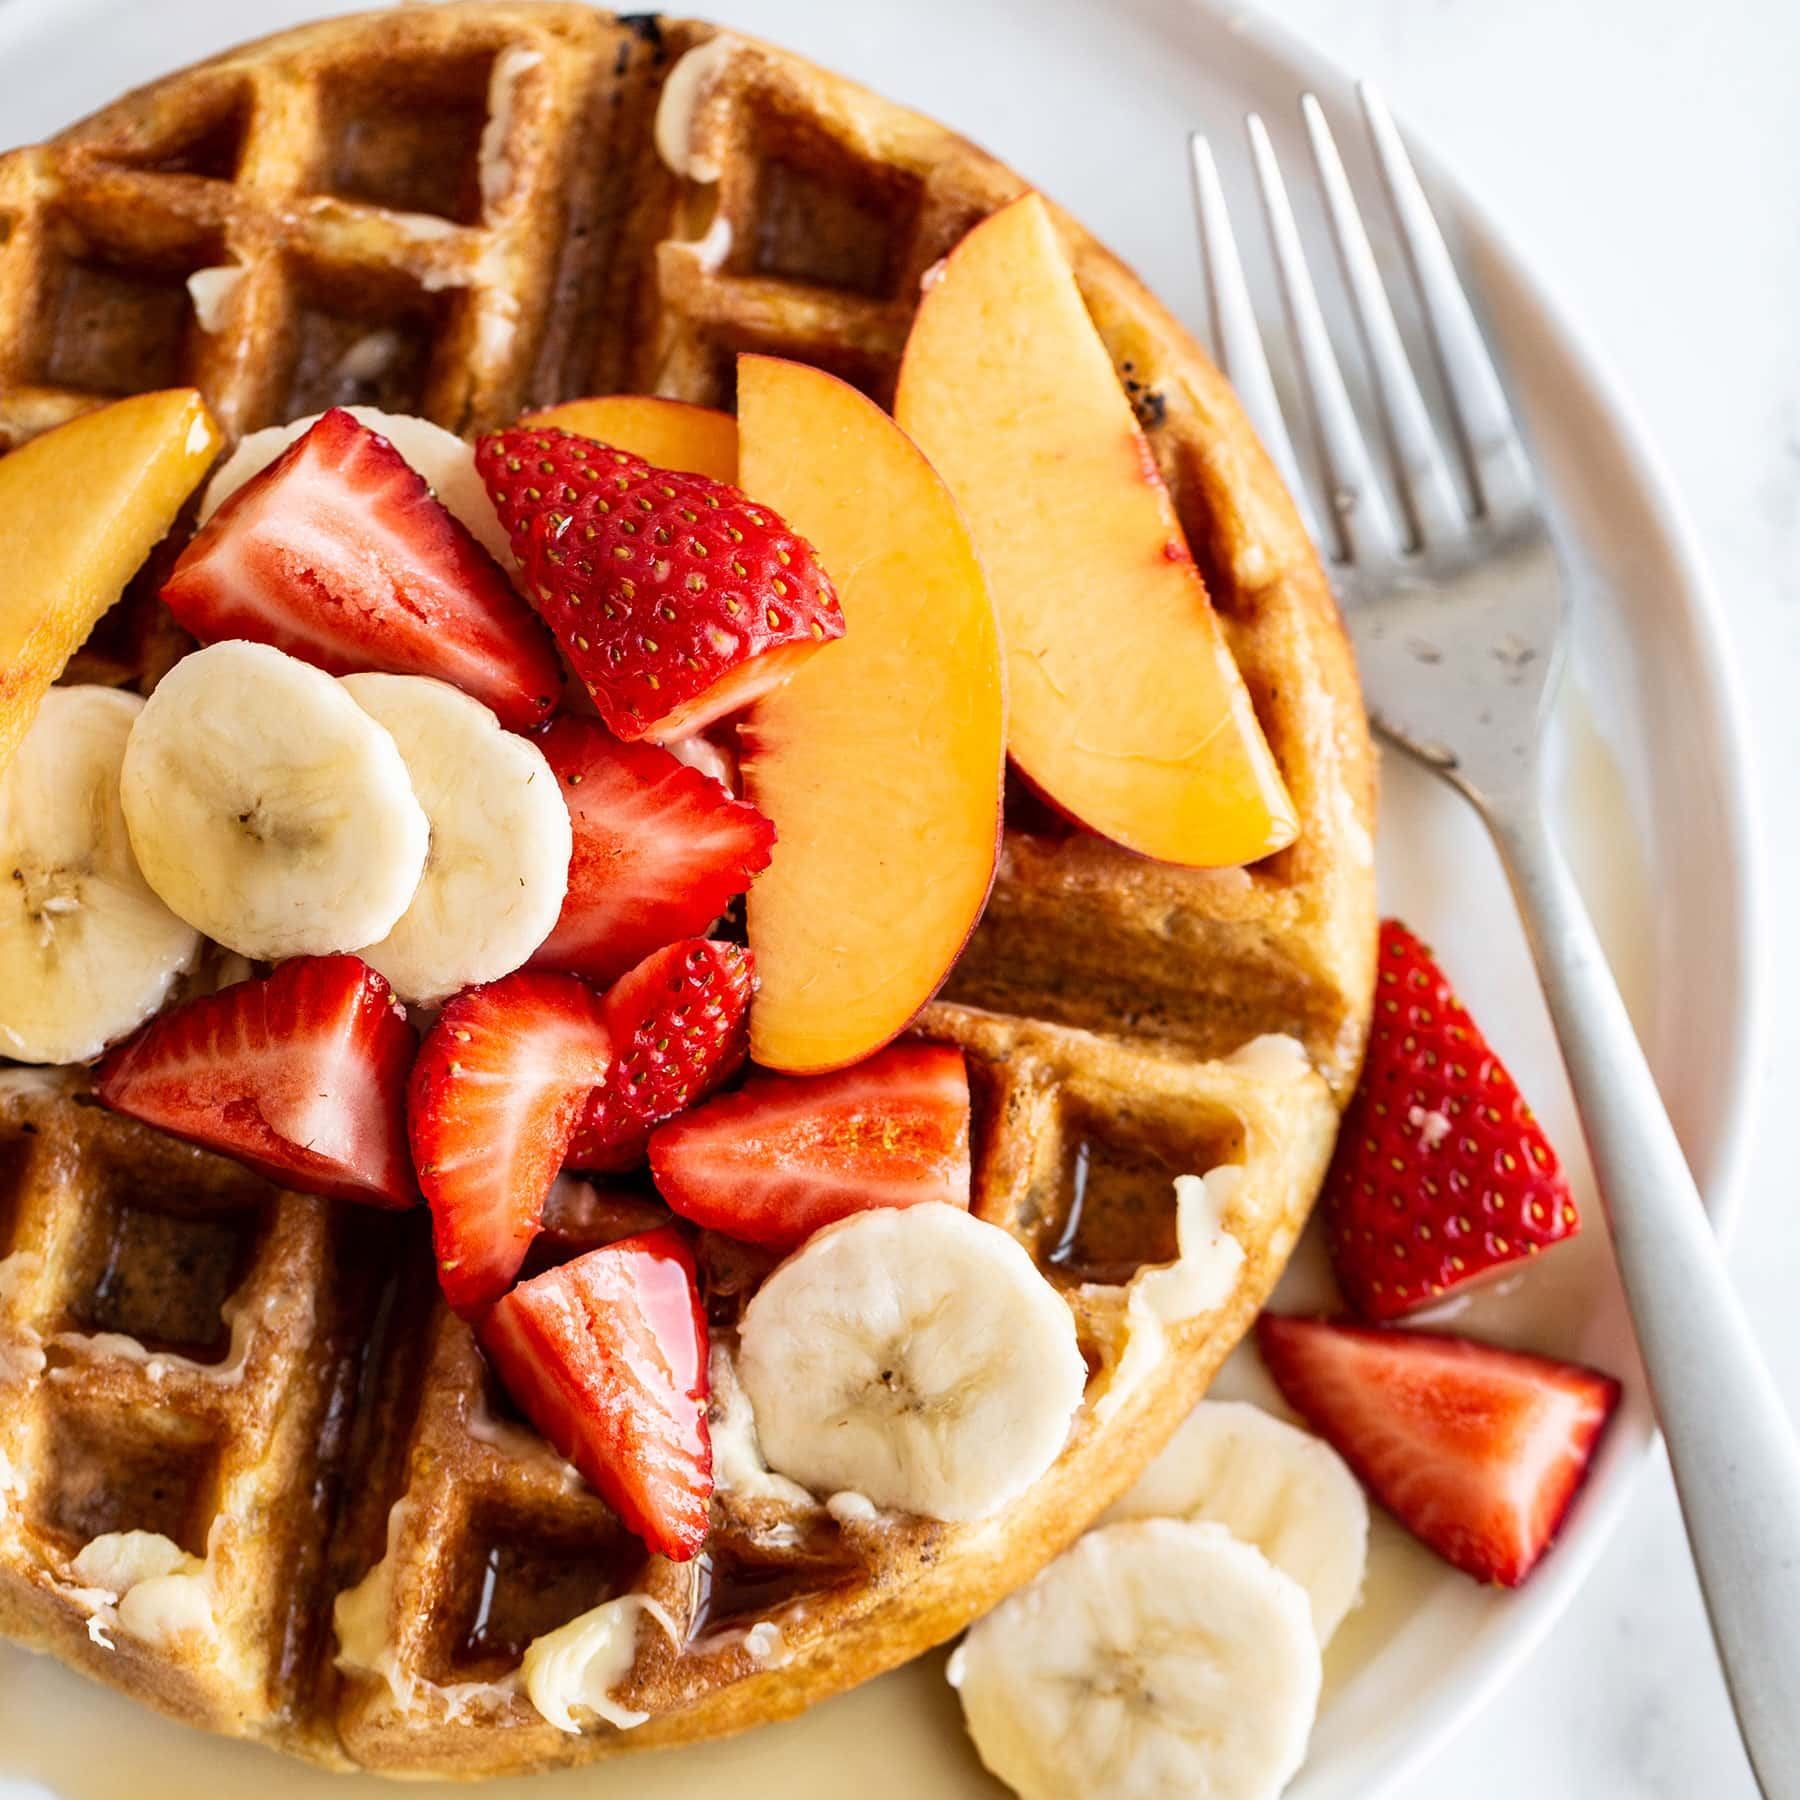 Homemade Belgian waffle on a plate with syrup and fresh fruit